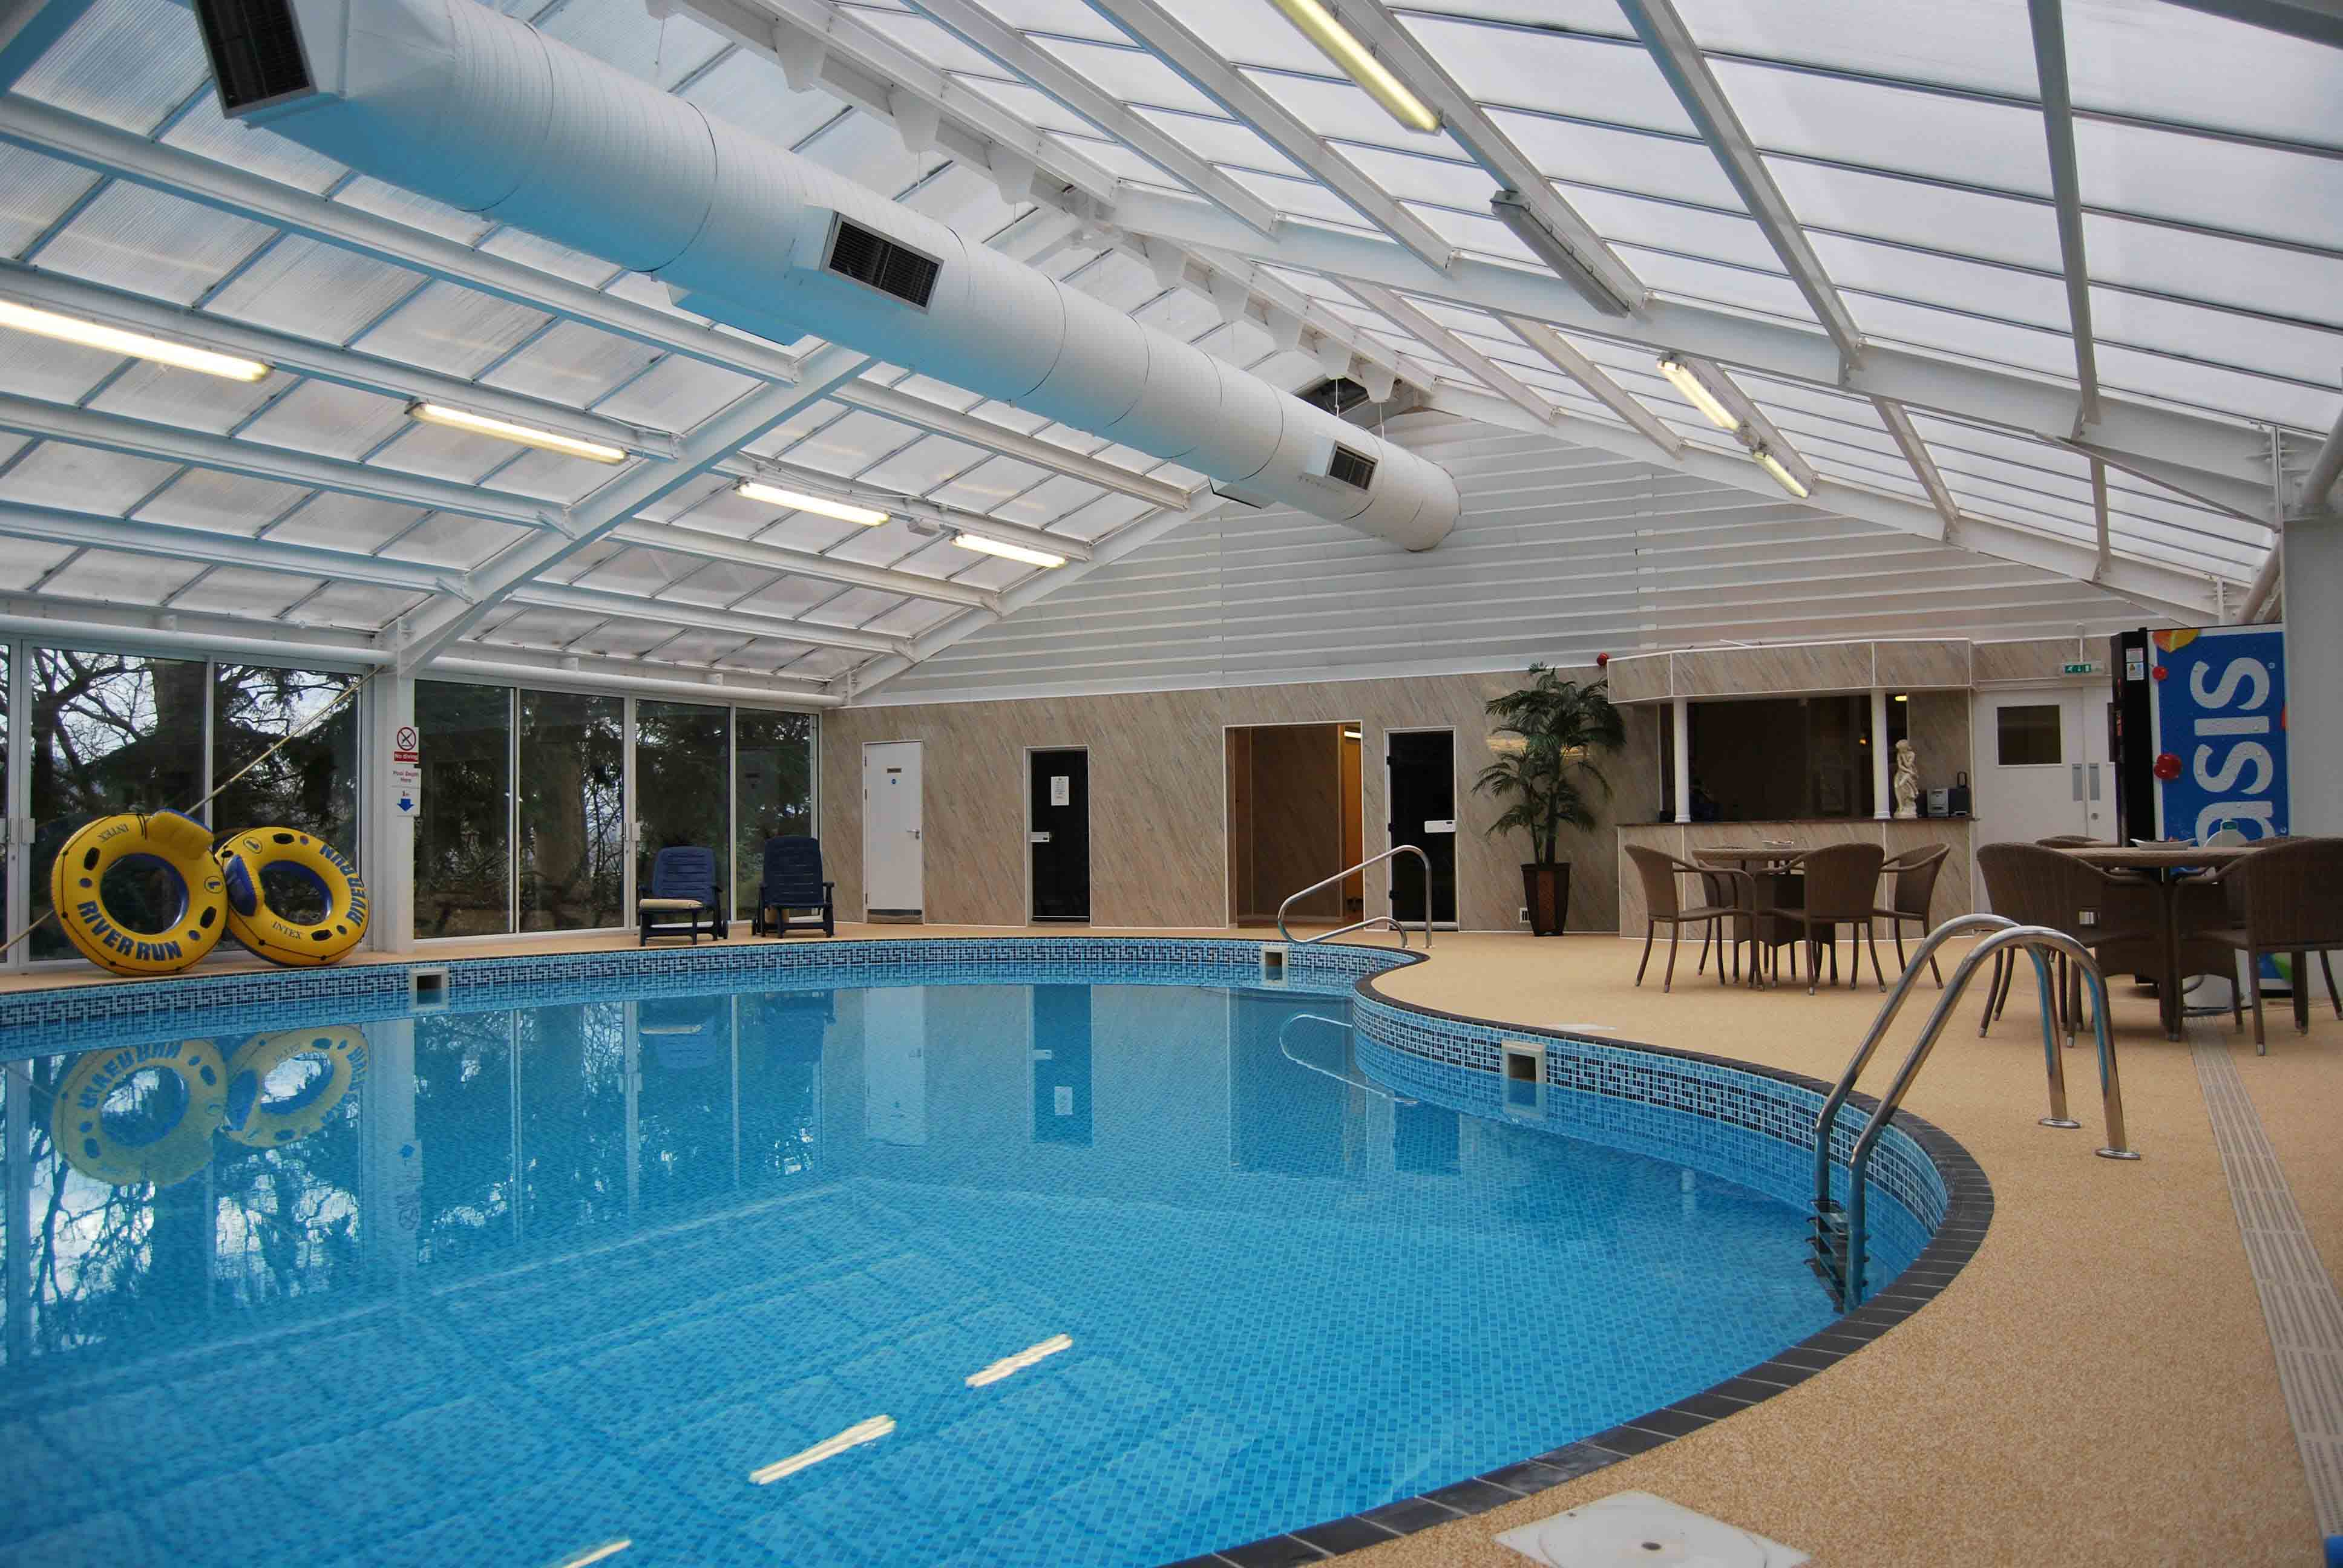 Knock castle perth scotland luxury travelers guide - Luxury scottish hotels with swimming pools ...